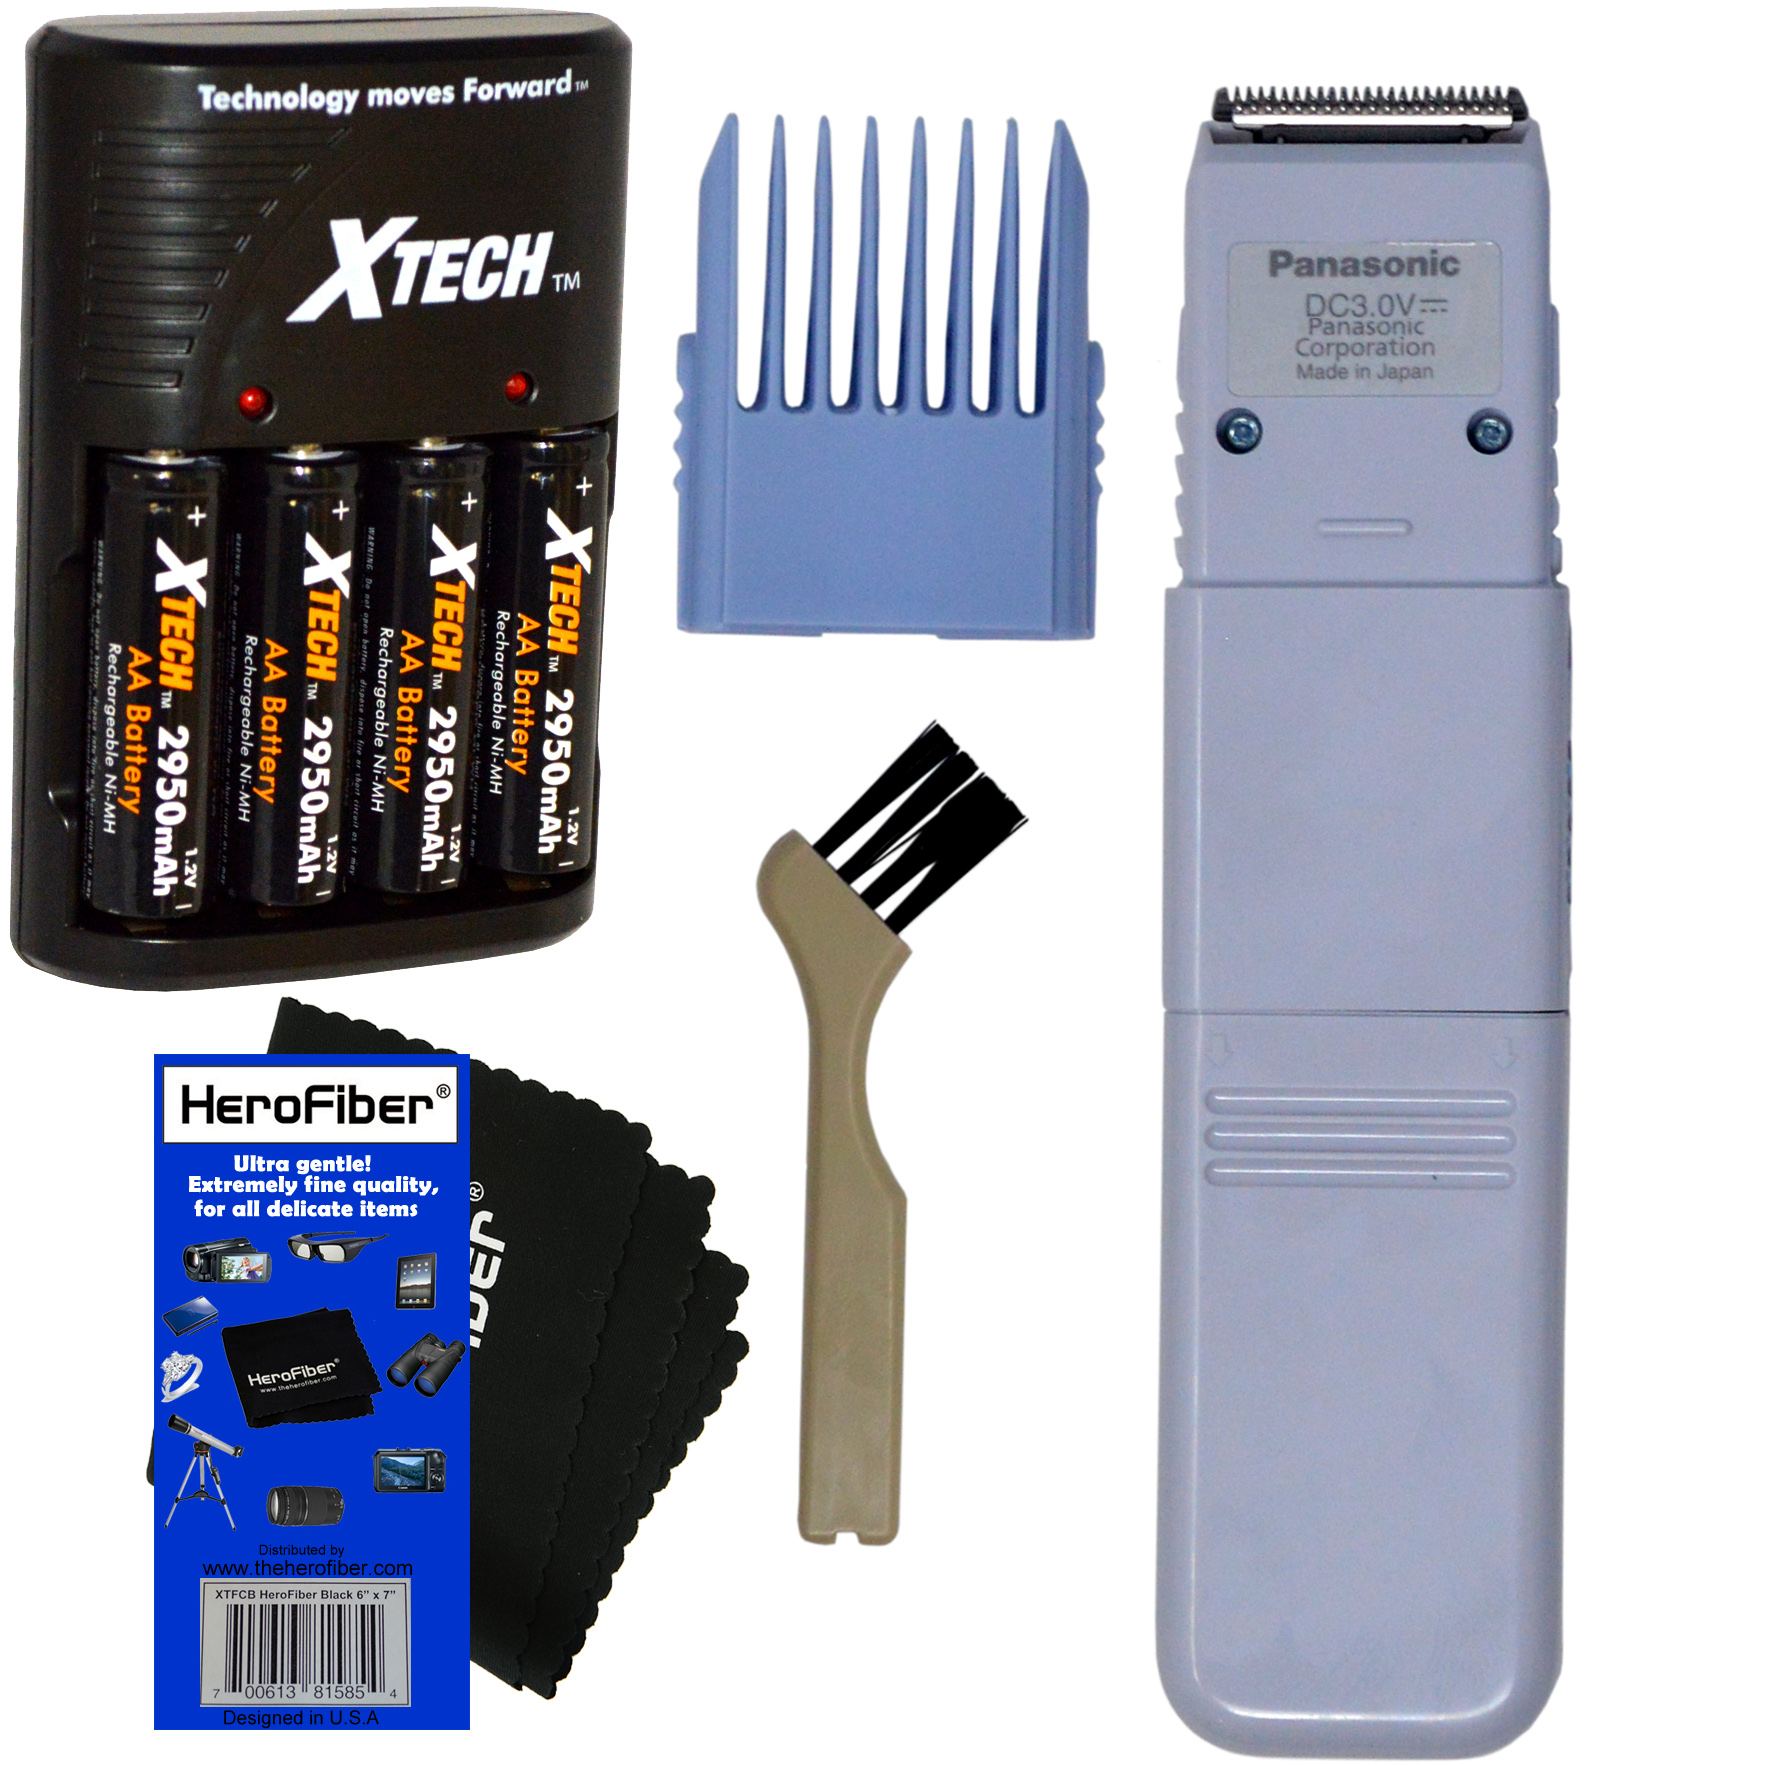 Panasonic 5-Position Bikini Trimmer & Shaper for Women + Comb Attachment +Xtech 4 AA Rechargeable Batteries with Quick Charger + Cleaning Brush + HeroFiber Ultra Gentle Cleaning Cloth